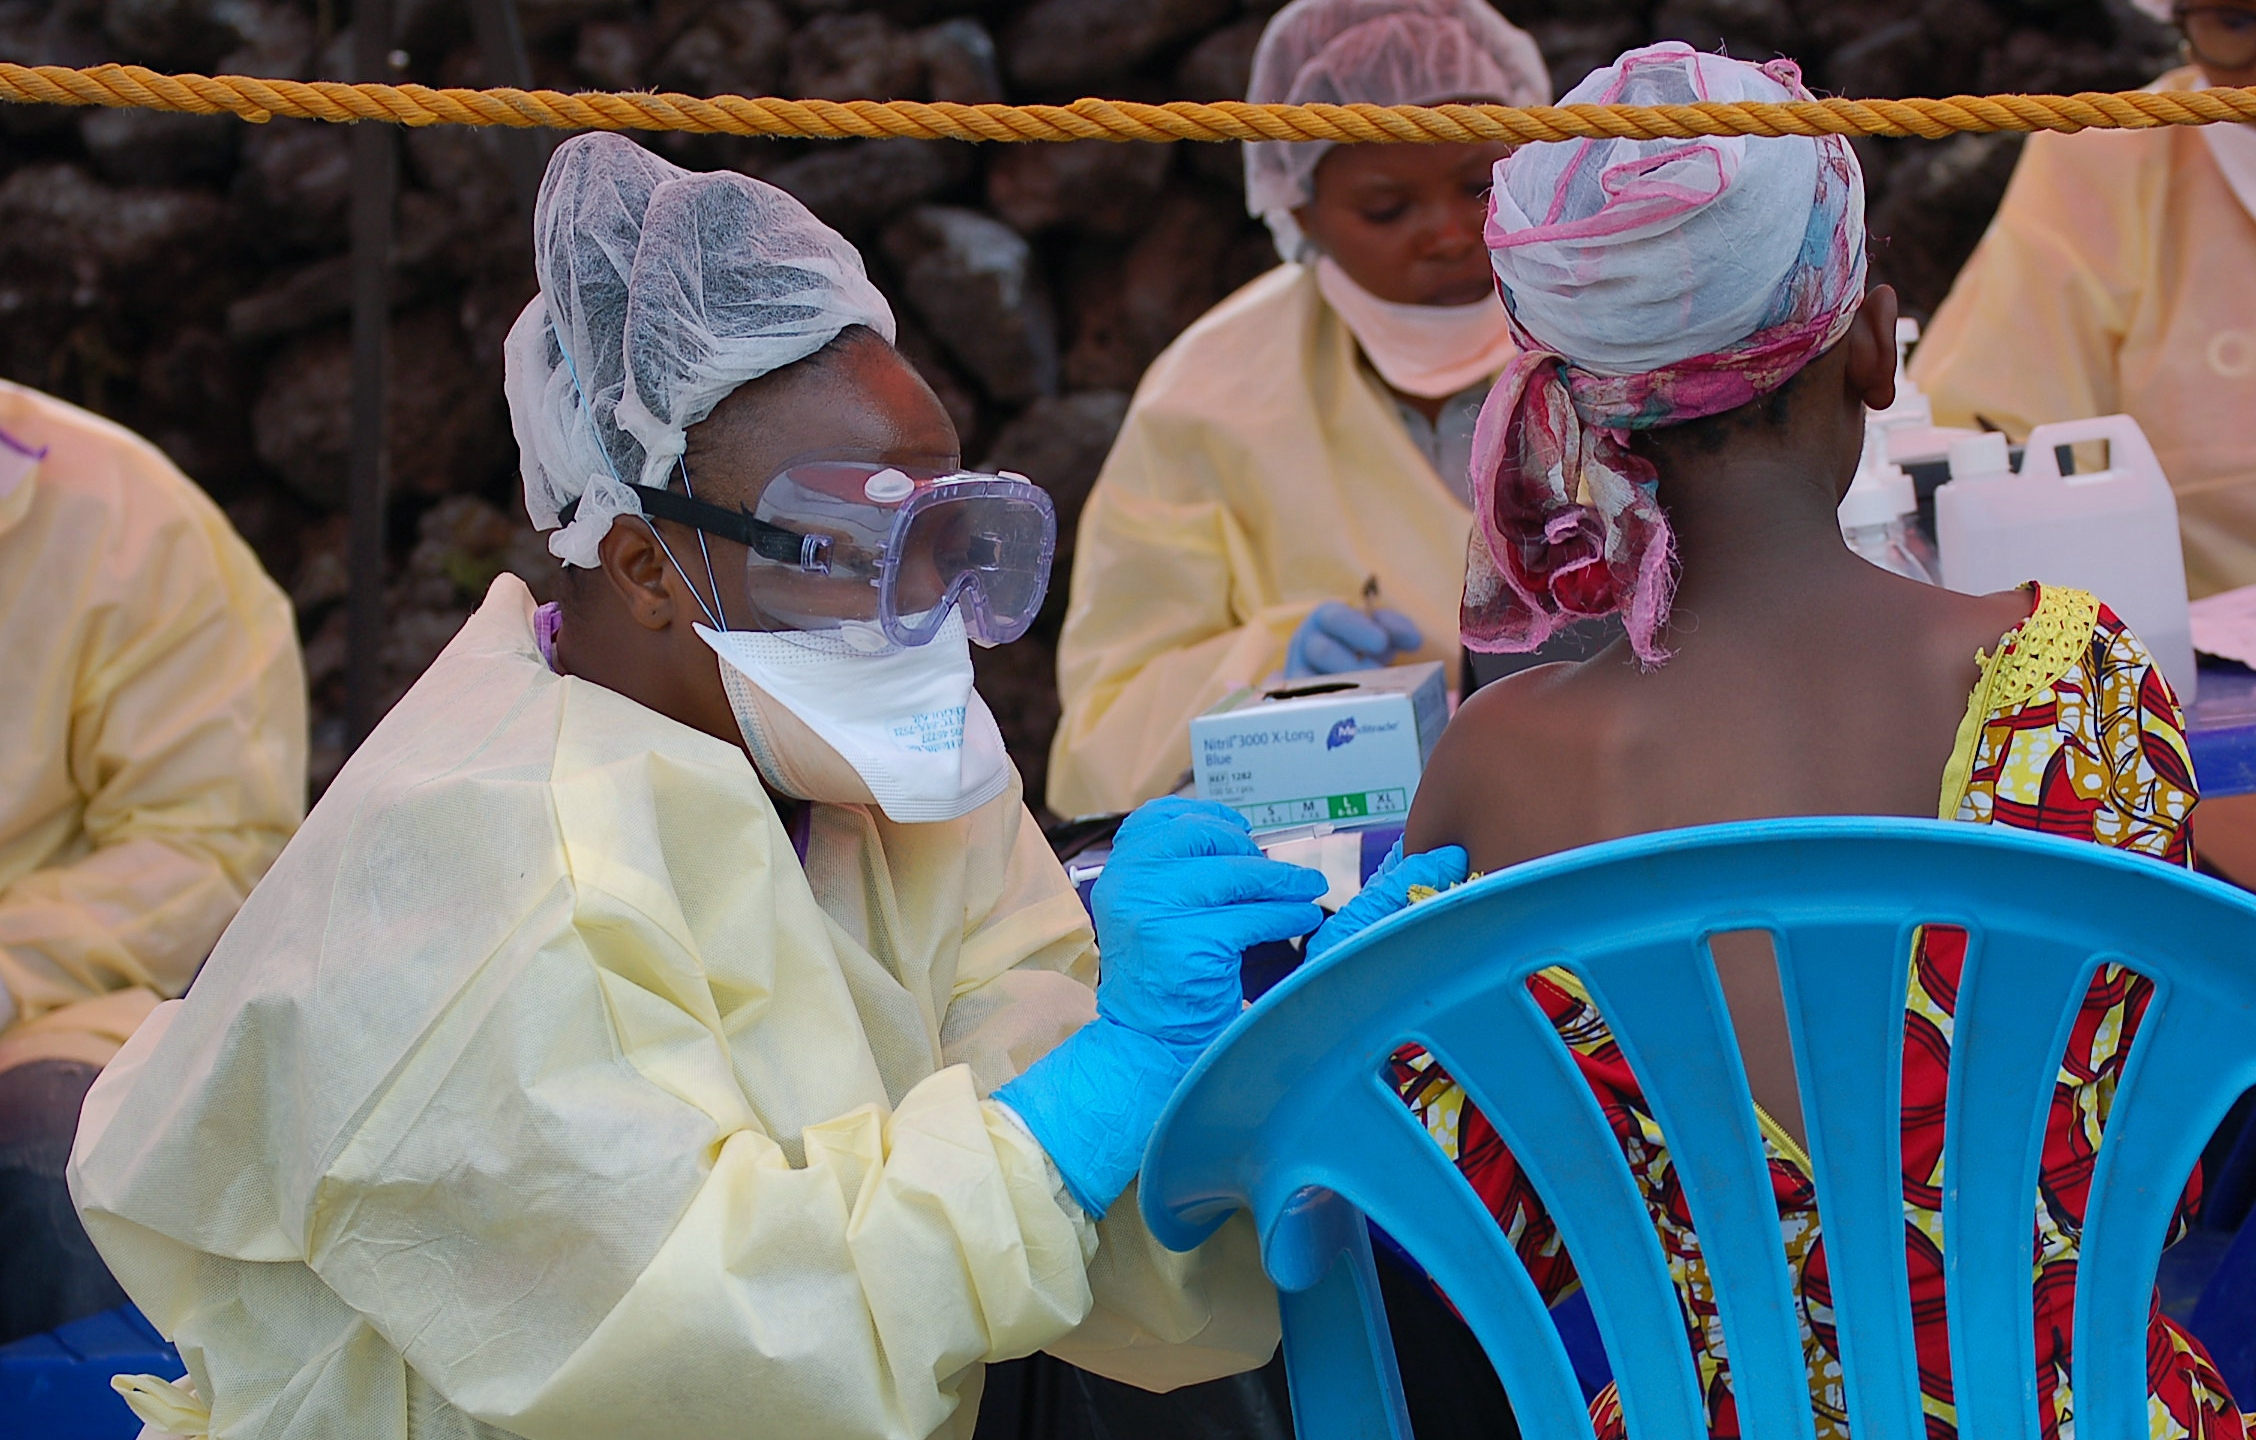 A girl receives a vaccine against Ebola from a nurse in Goma in the Democratic Republic of the Congo on Aug. 7, 2019. (Credit: Augustin Wamenya / AFP / Getty Images)